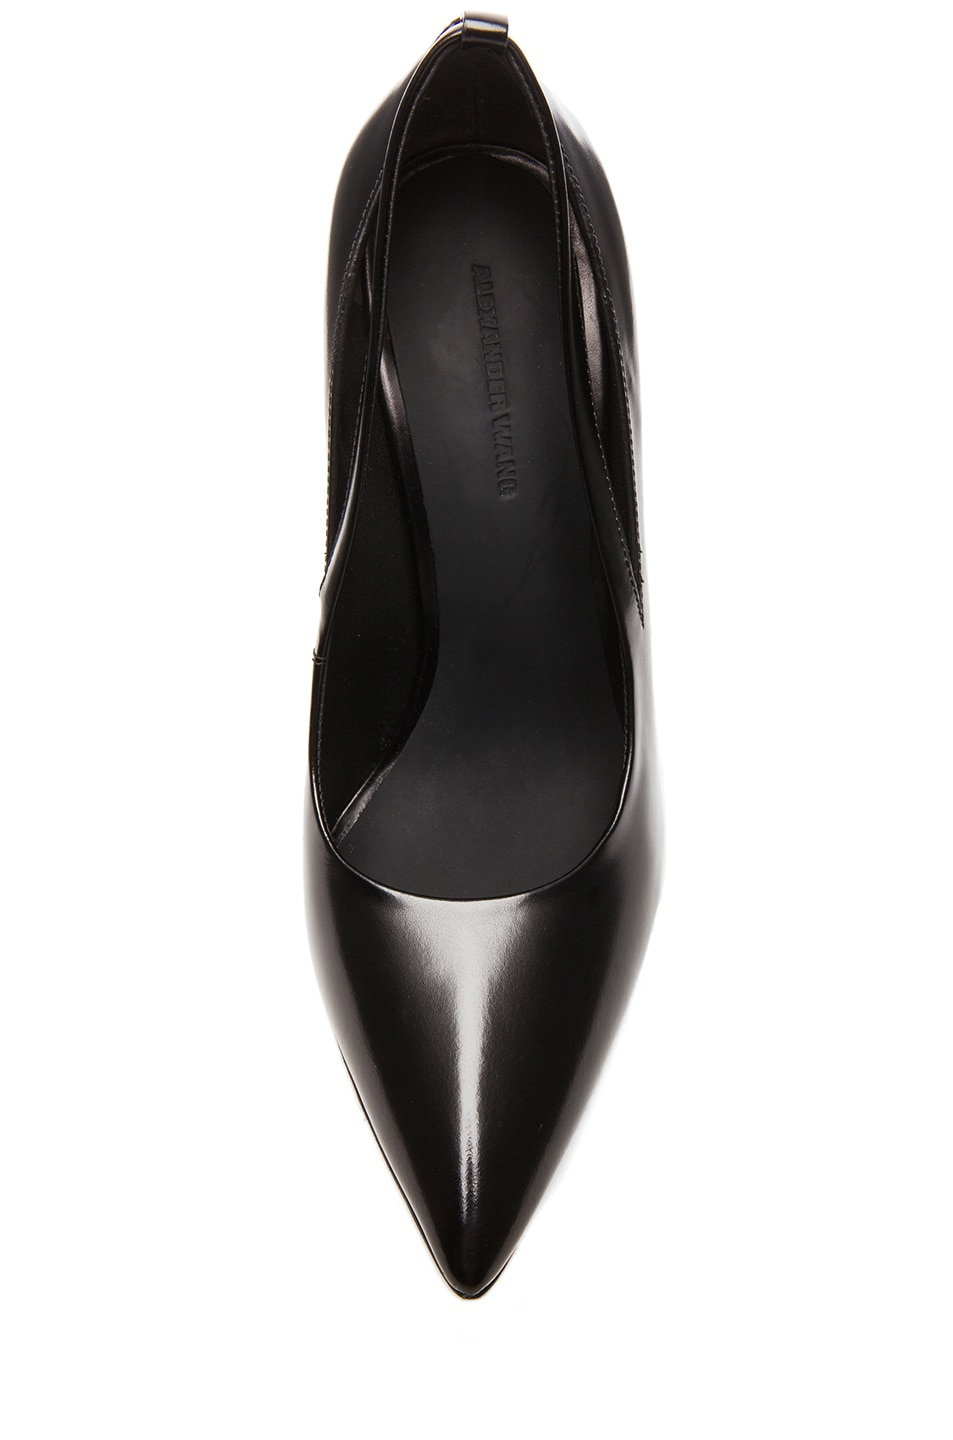 Image 4 of Alexander Wang Kiko Shiny Leather Pumps in Black